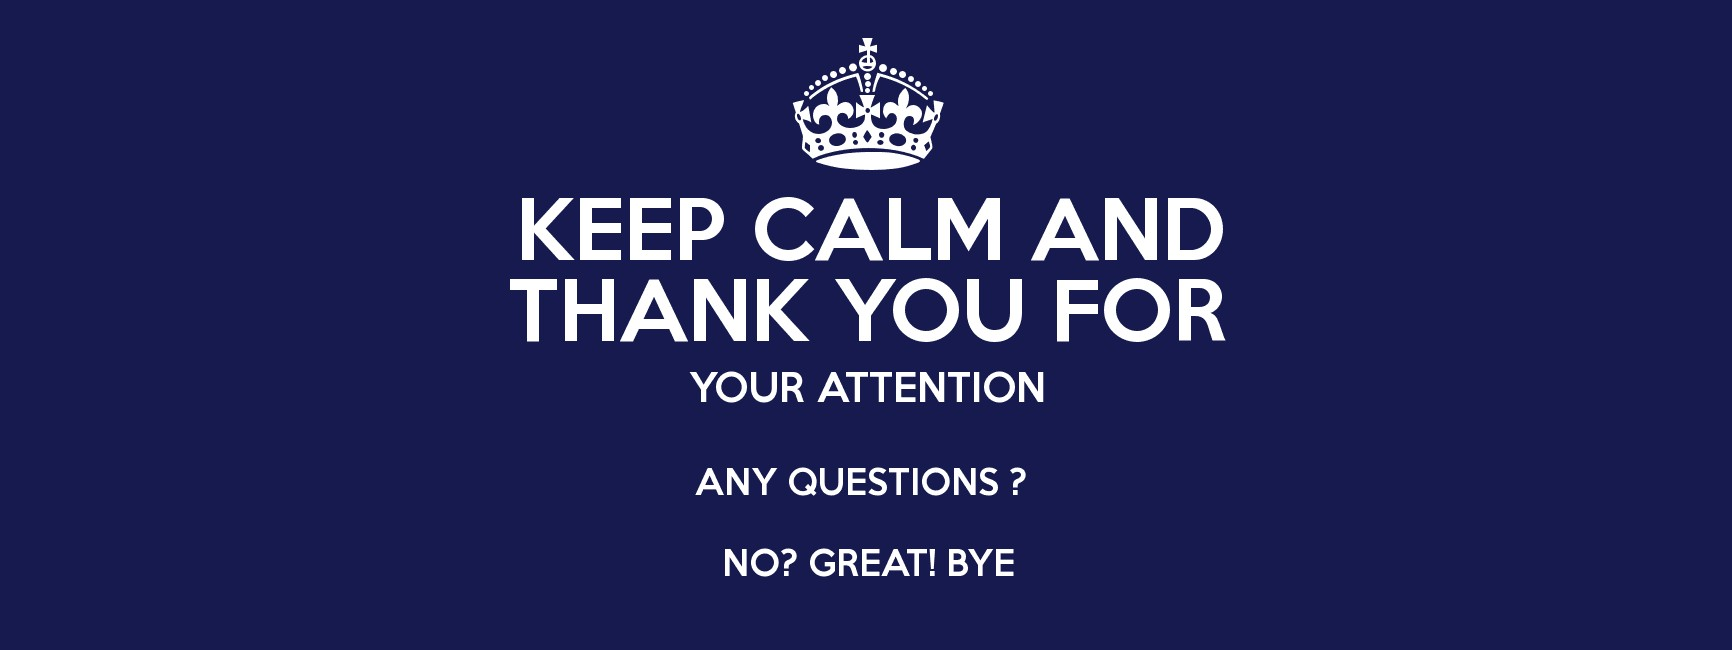 keep calm and thank you for your attention any questions